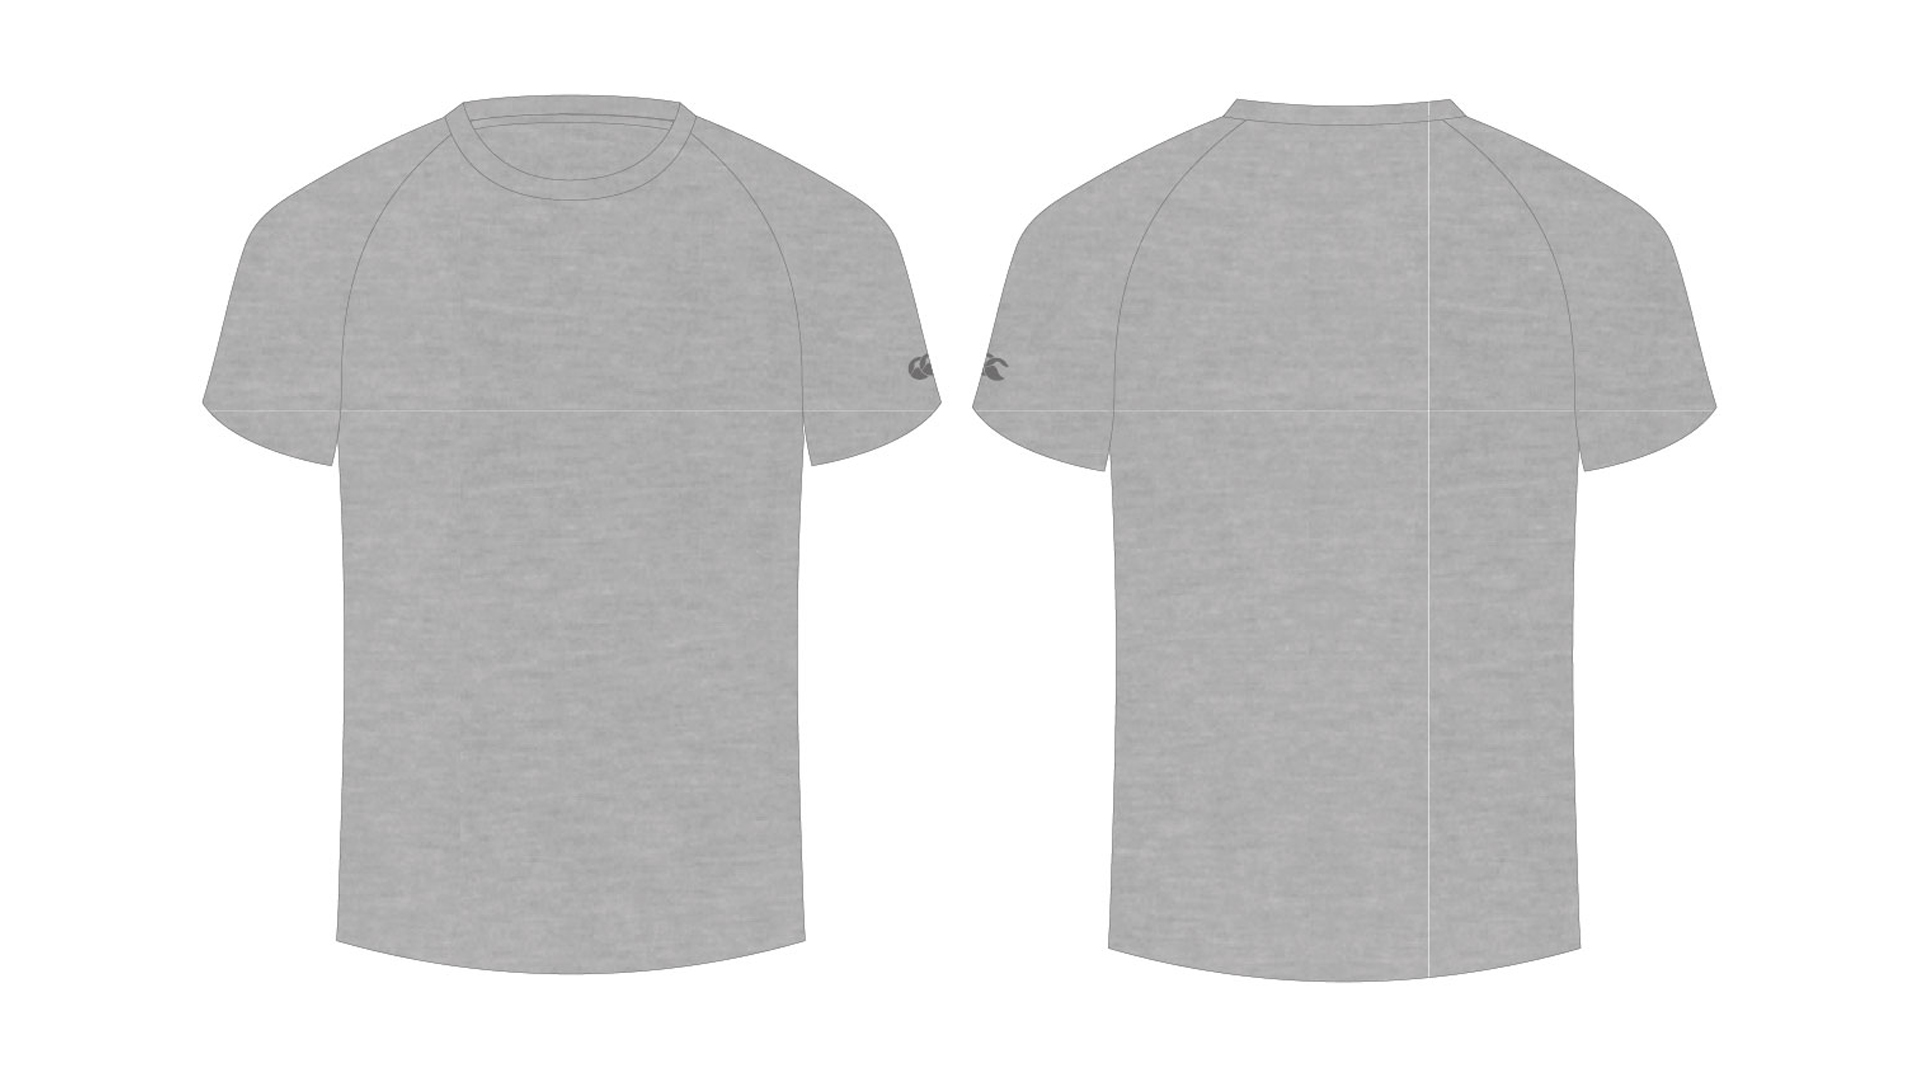 Blank Tshirt Template For Classroom In Gray Color